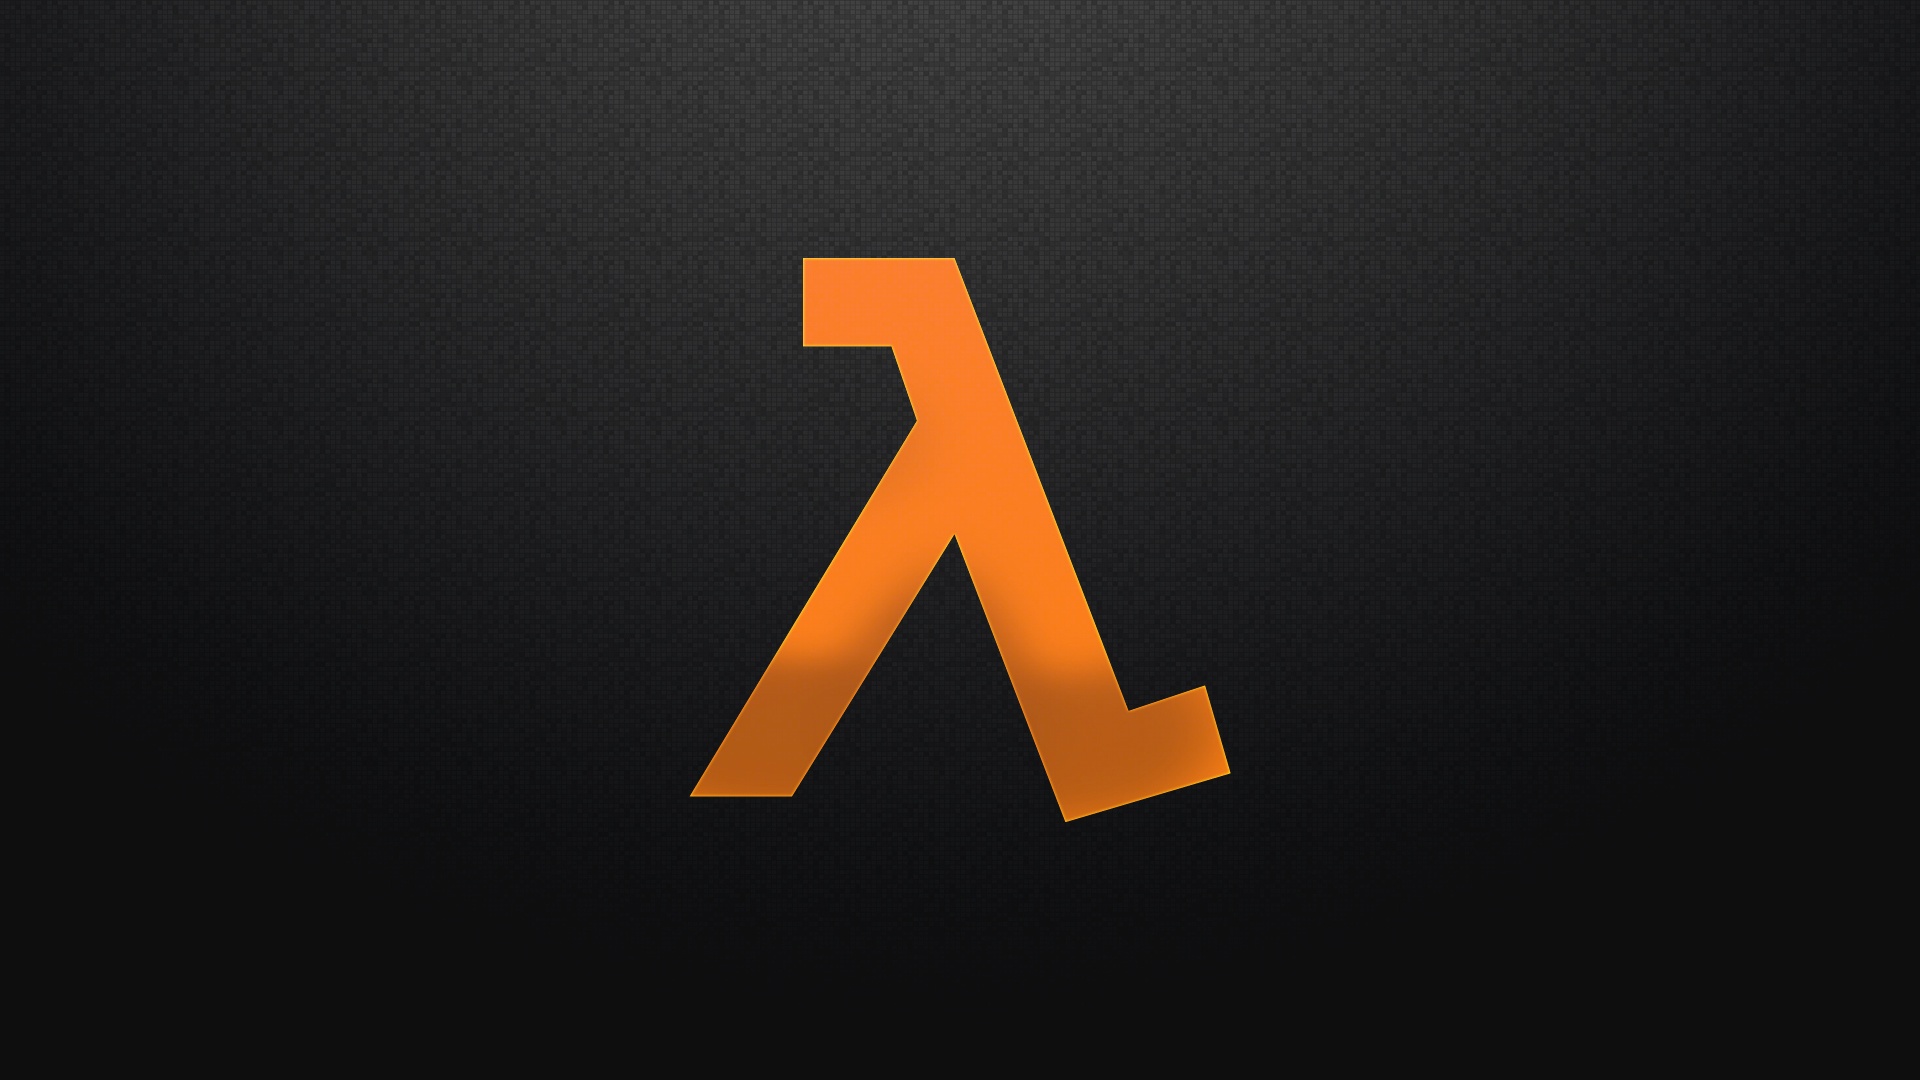 half-life logos HD Wallpaper